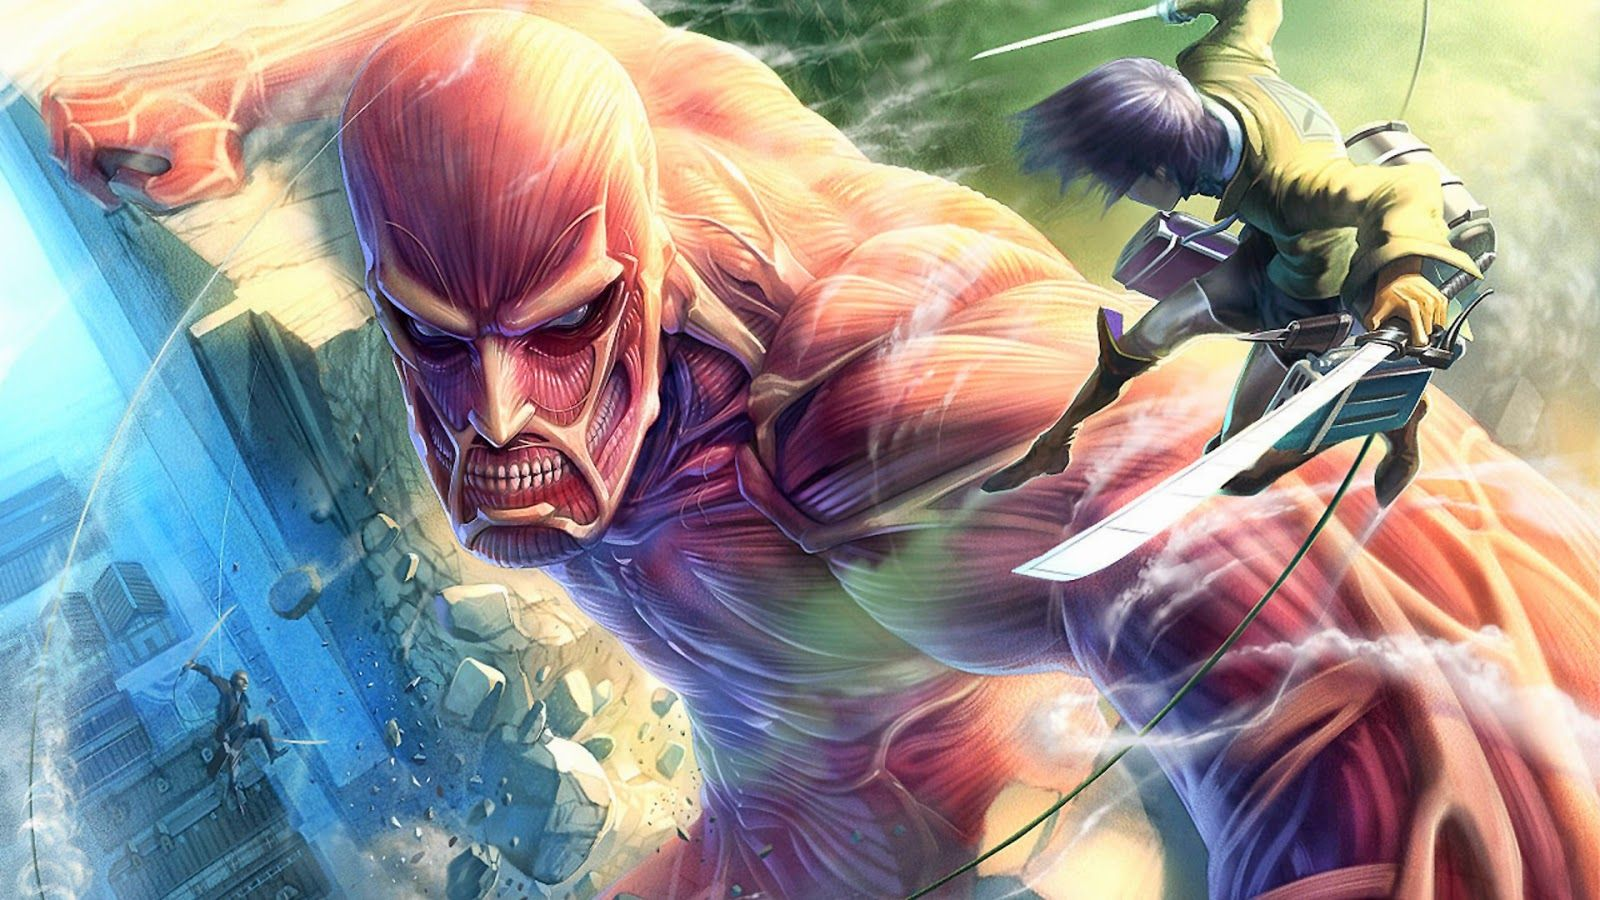 No kyojin eren jaeger wallpaper by deathb00k customization wallpaper - Attack On Titan Desktop Wallpapers On Games Category Are Served In The Ultimate Possible Resolution Pixels Kb In Size